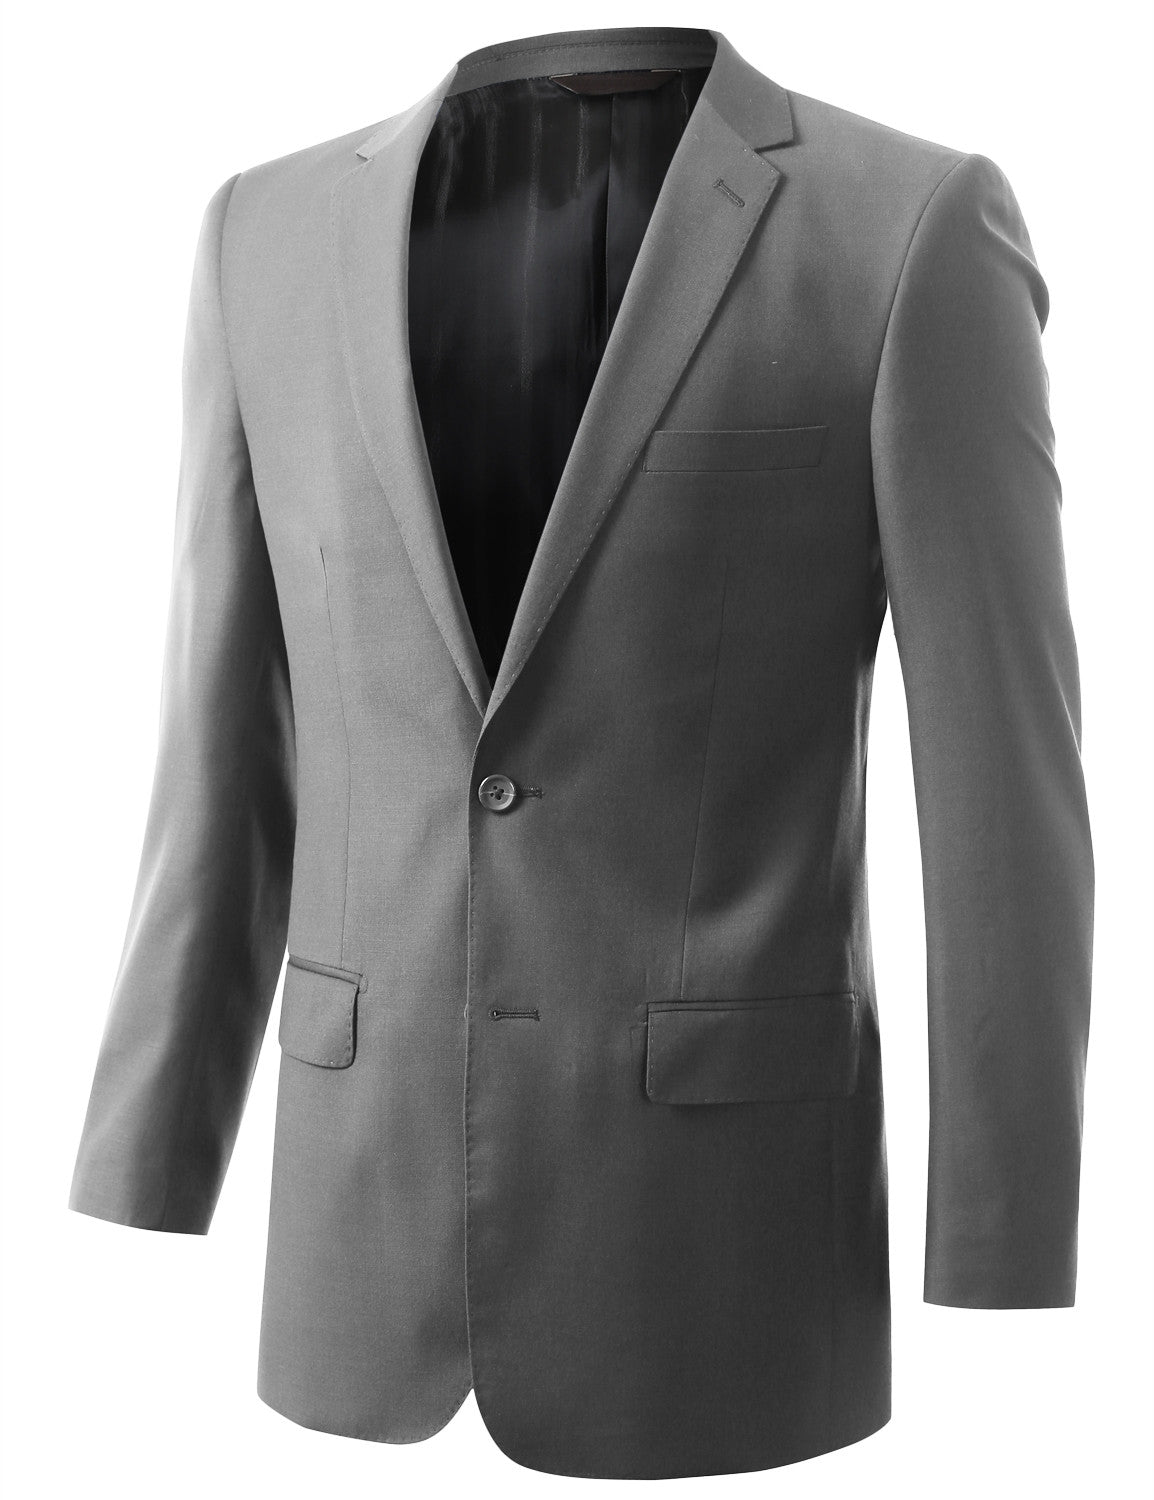 GRAY Solid Gray Modern Fit 2 Piece Suit- MONDAYSUIT